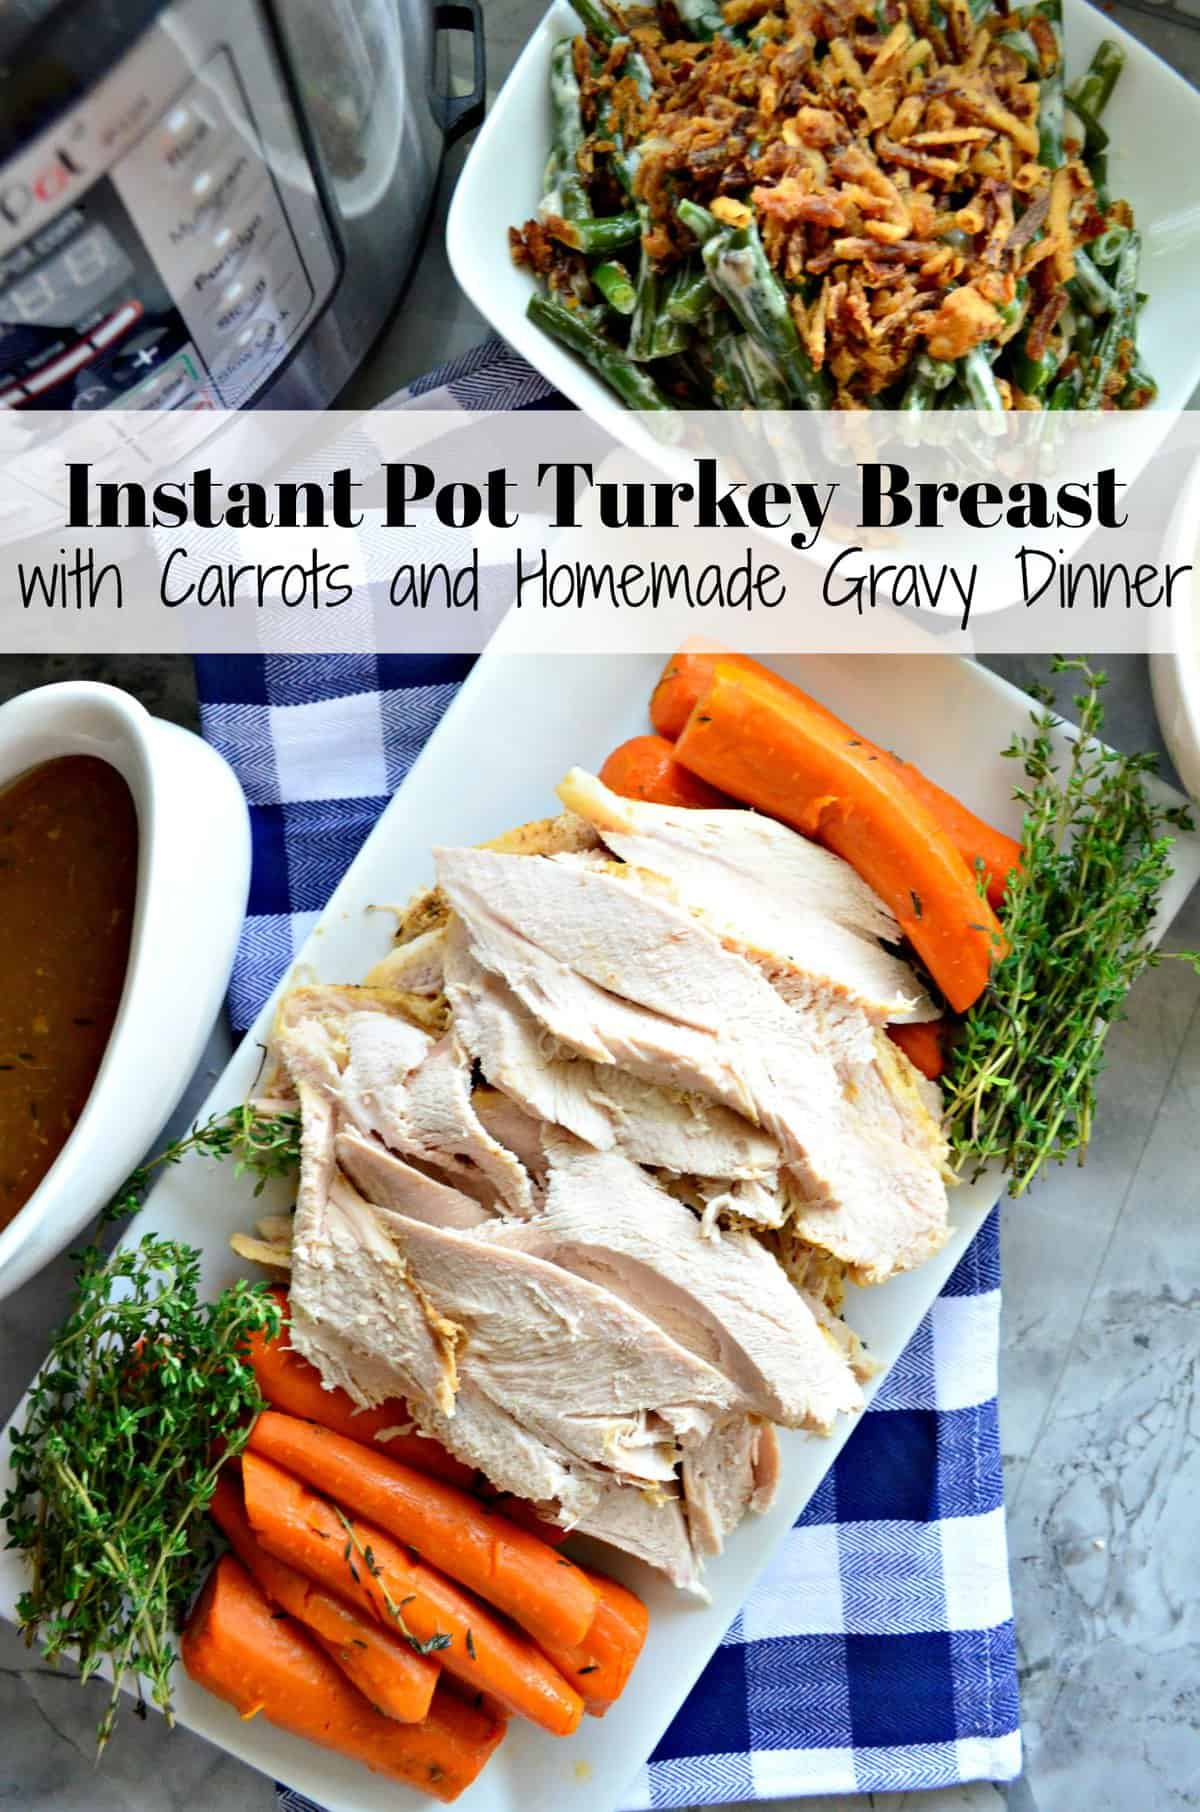 Instant Pot Turkey Breast with Carrots on platter next to Homemade Gravy boat with title text.